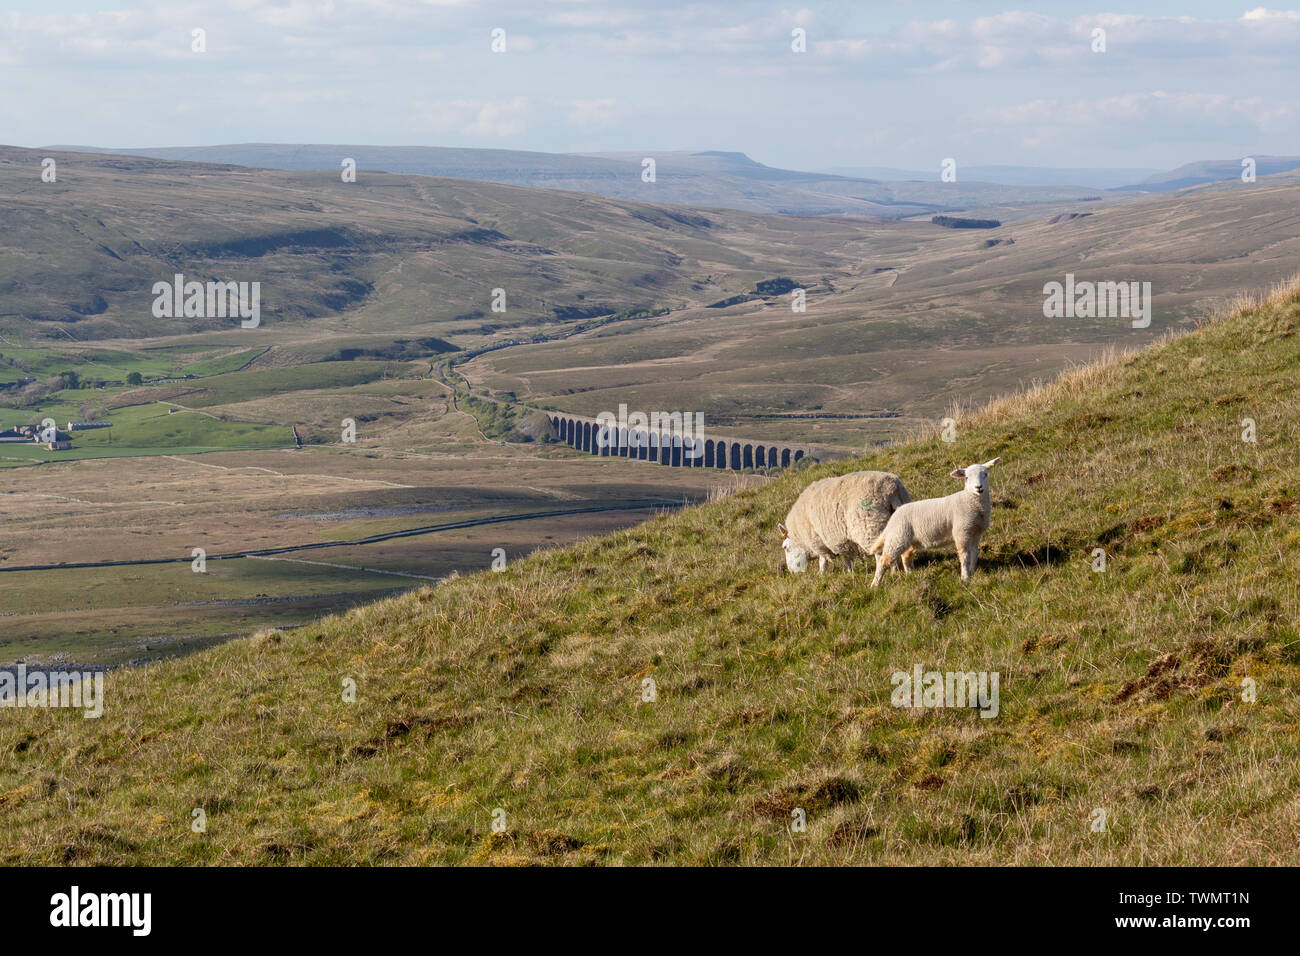 Ewe and Lamb on hillside in Yorkshire Dales, England, UK - Stock Image